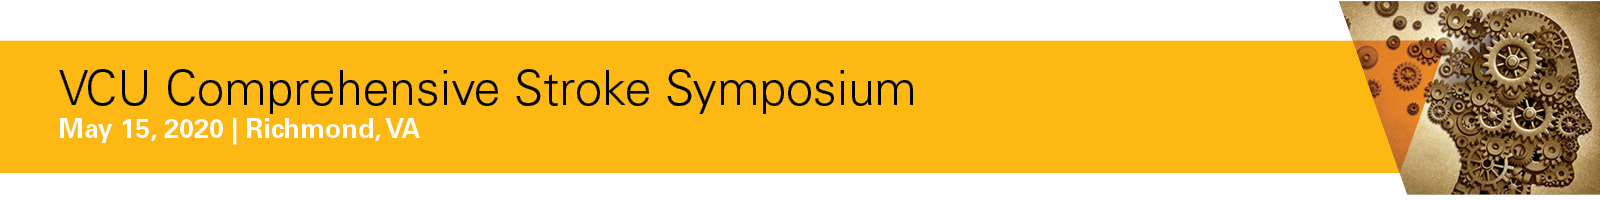 2020 VCU Comprehensive Stroke Symposium Banner